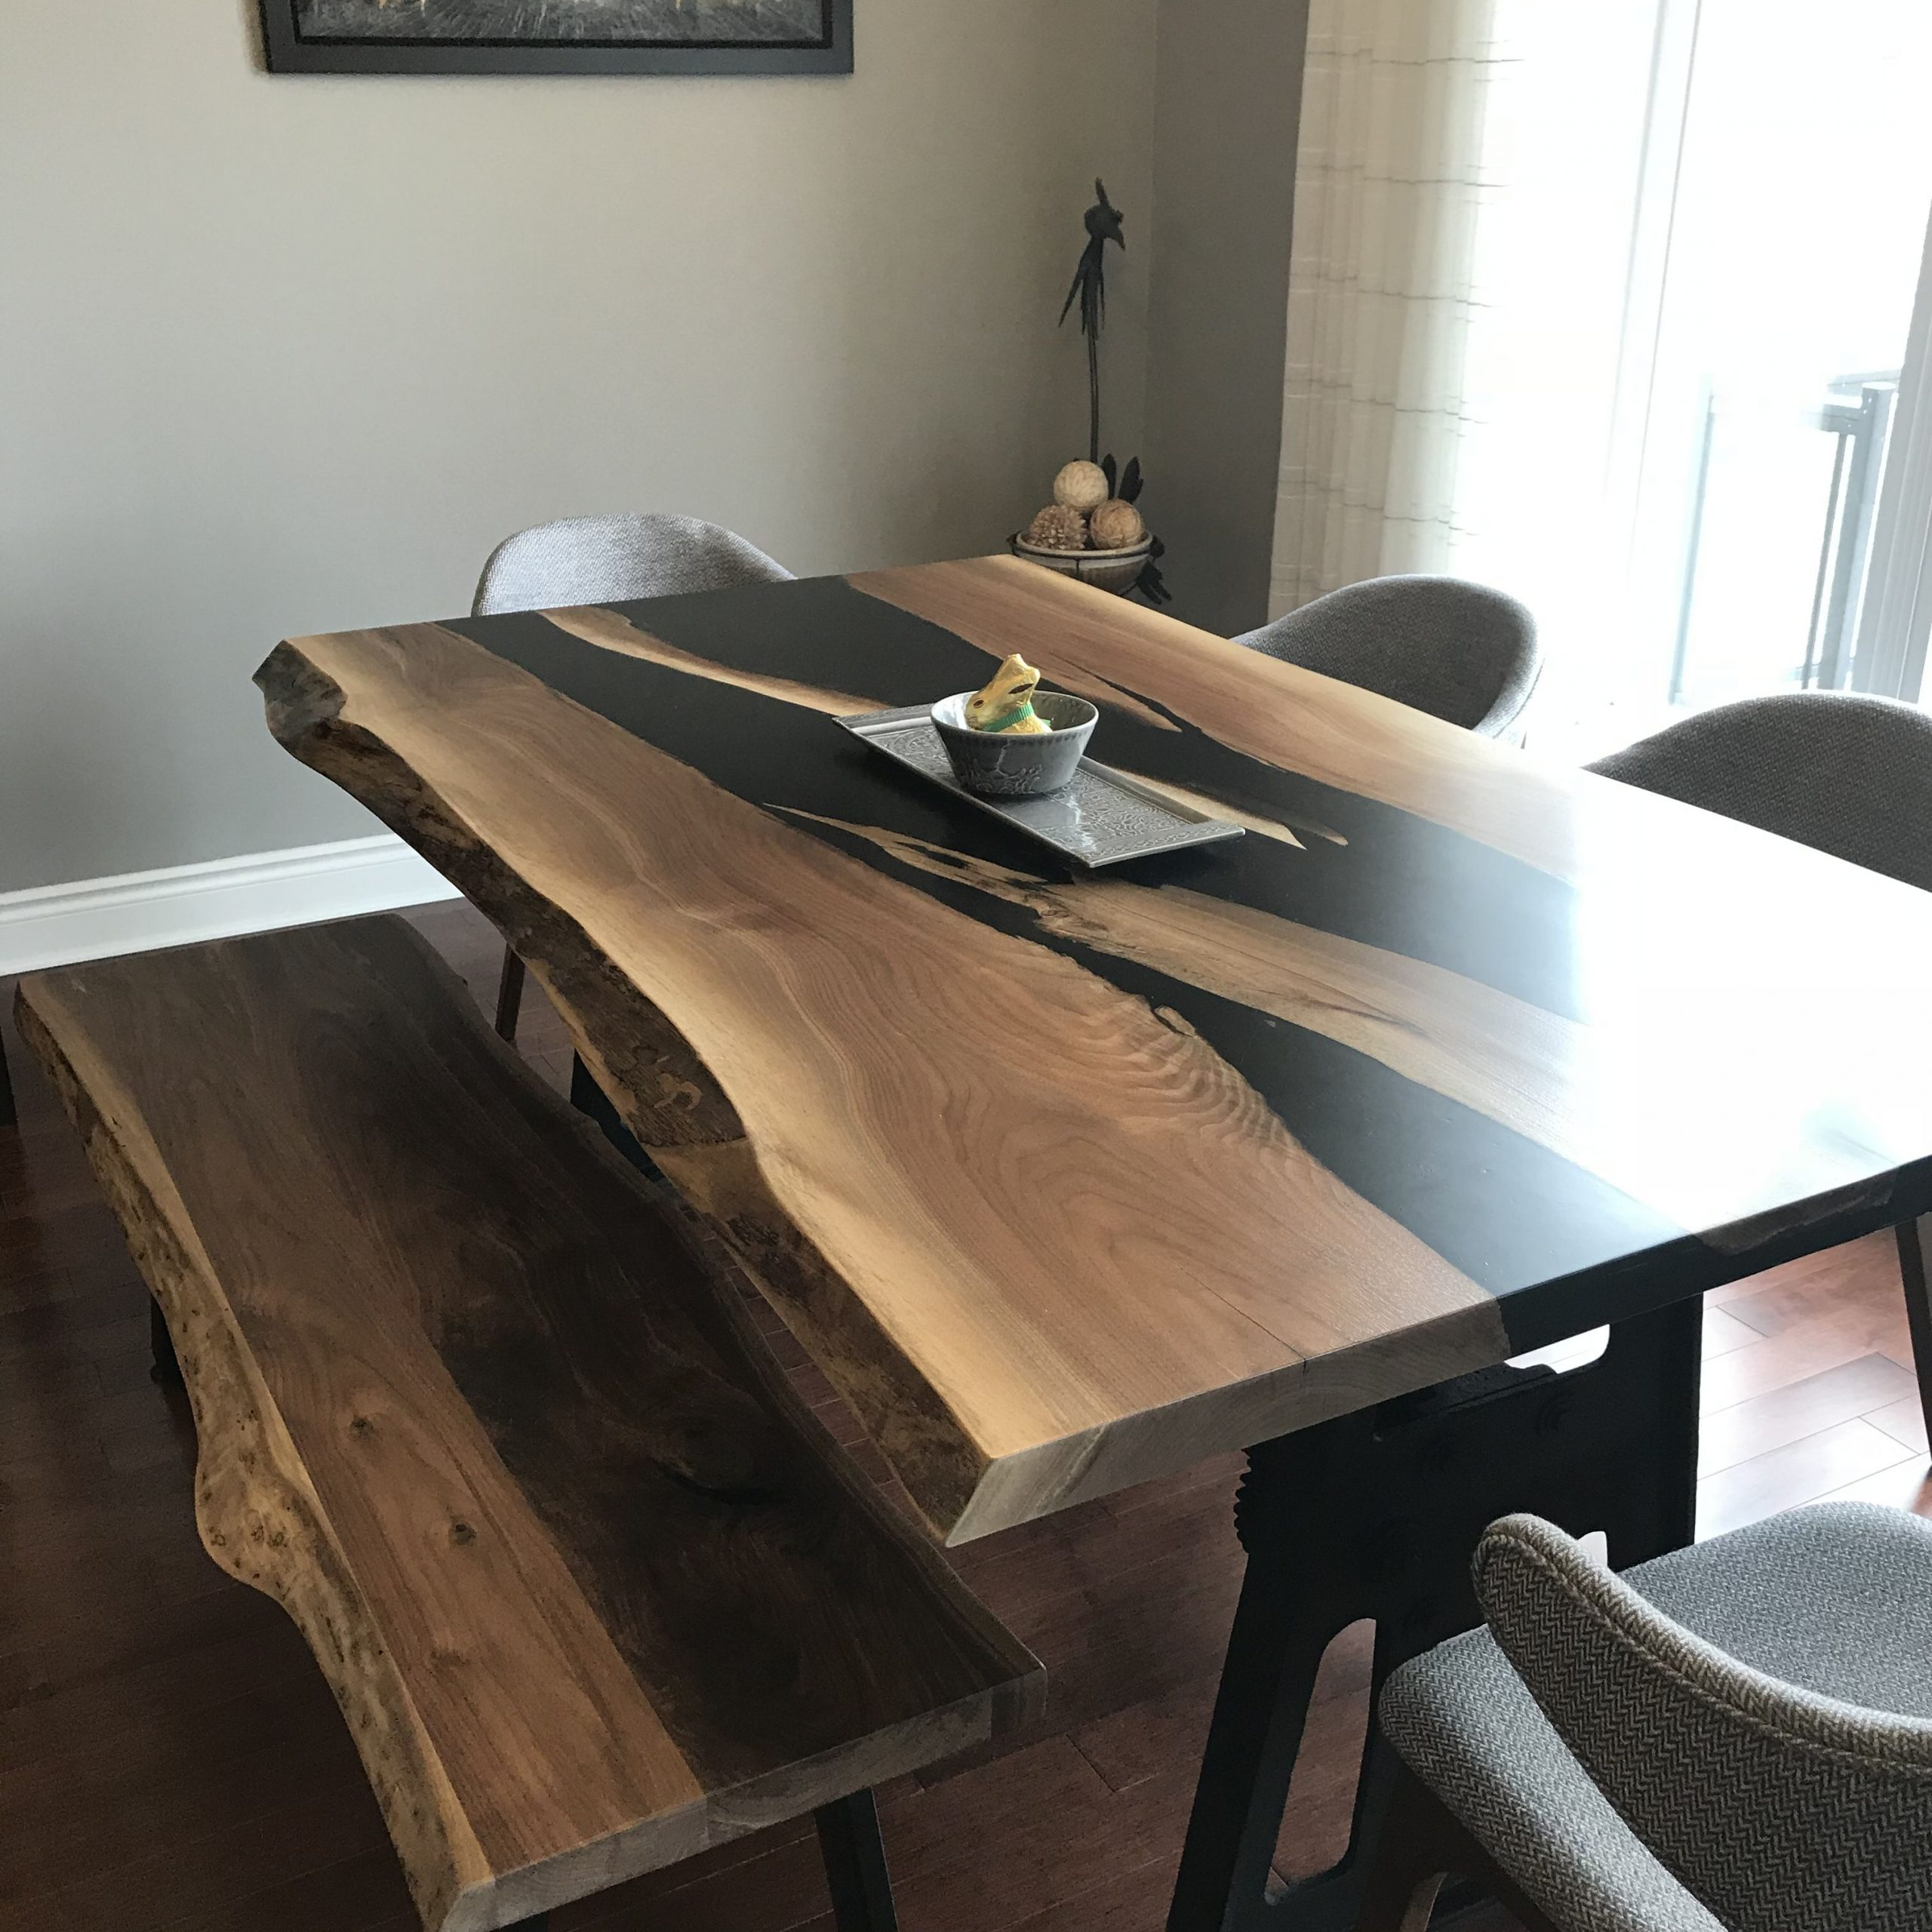 Walnut Finish Live Edge Wood Contemporary Dining Tables Throughout Preferred Live Edge Walnut Black River Resin Table With Bench (View 5 of 25)